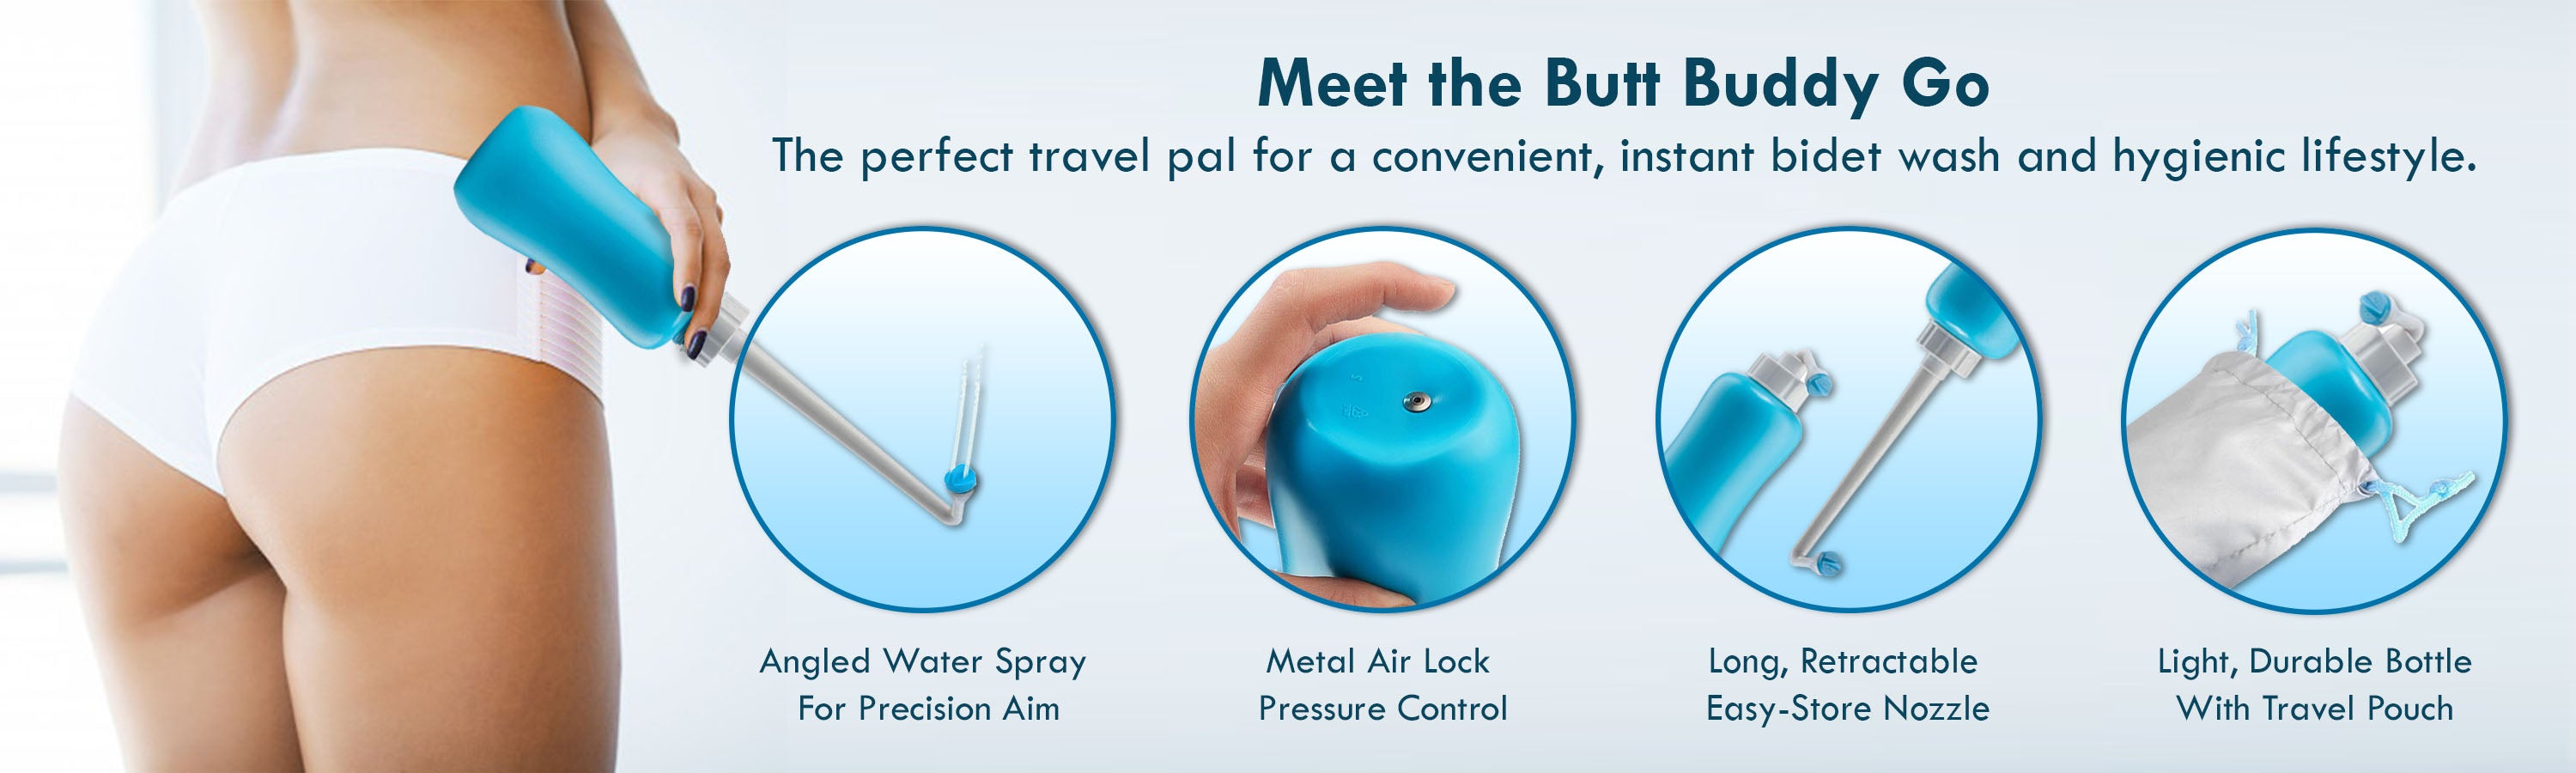 In My Bathroom (IMB) | Butt Buddy - Bidet Toilet Attachment - Fresh Water Sprayer - Stop Dirty Wiping - Start Clean Washing - BBB